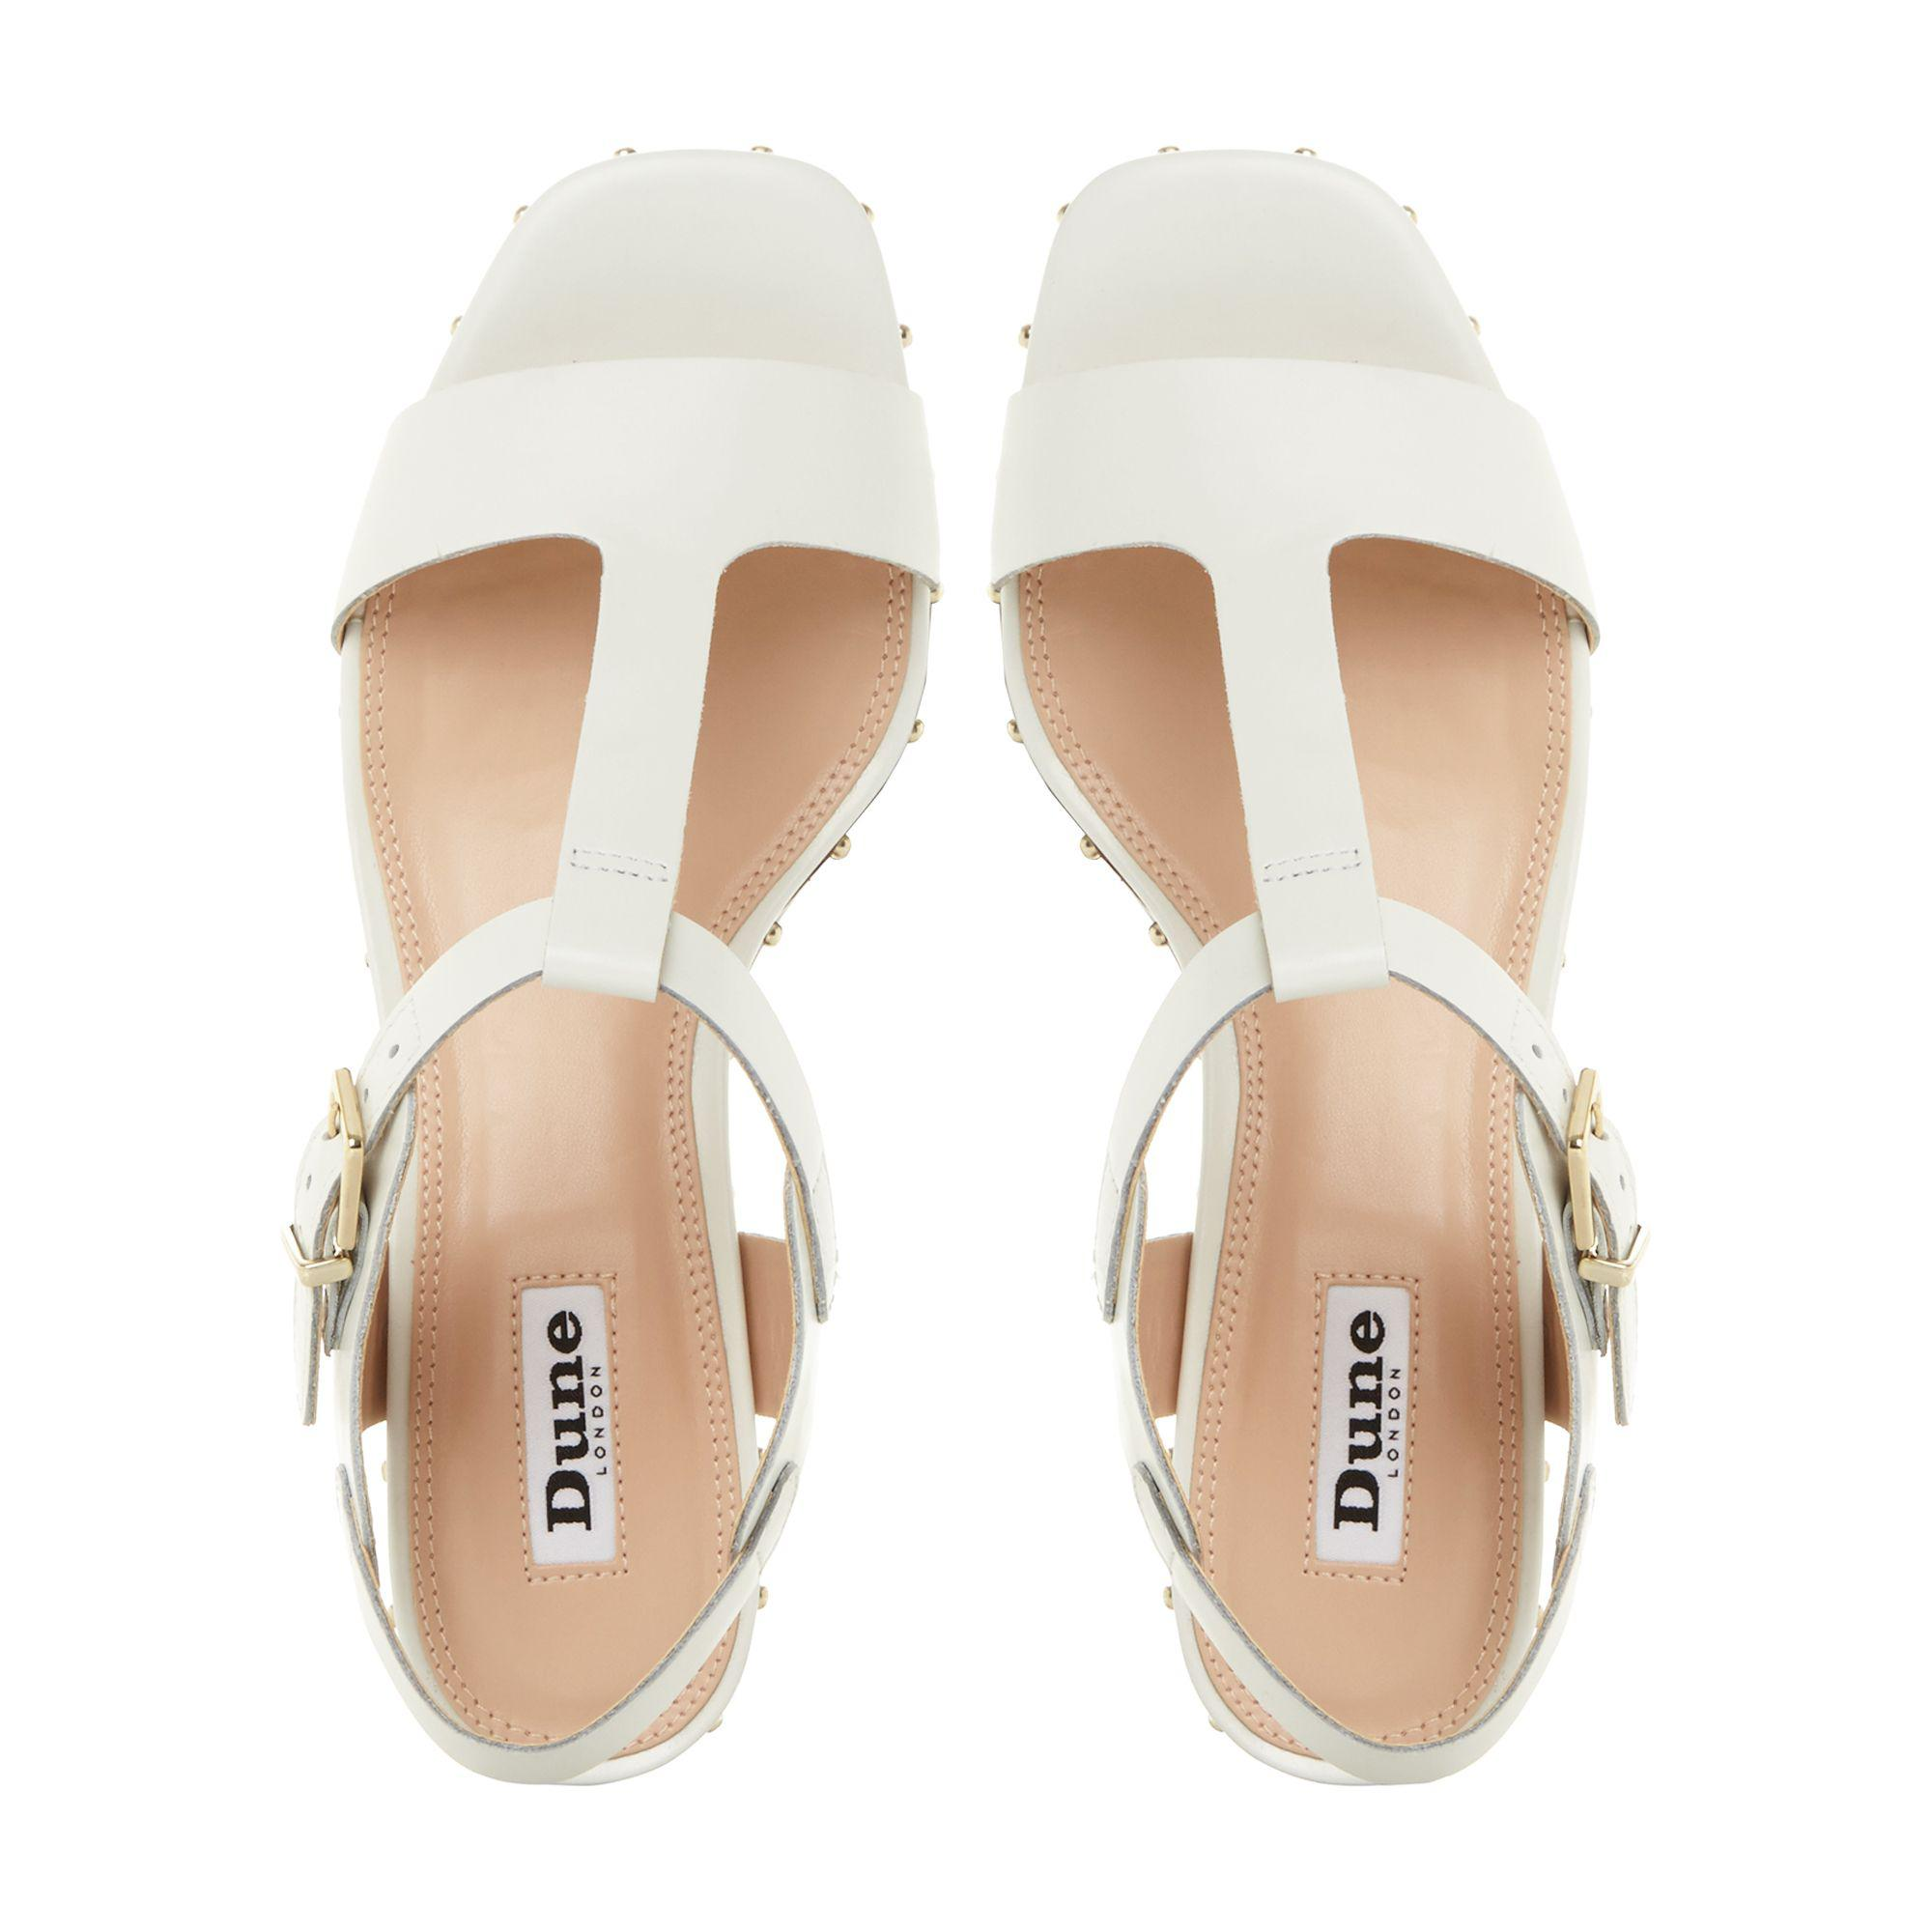 7c52af134497 Dune White Leather  isadora  Mid Block Heel T-bar Sandals in White ...